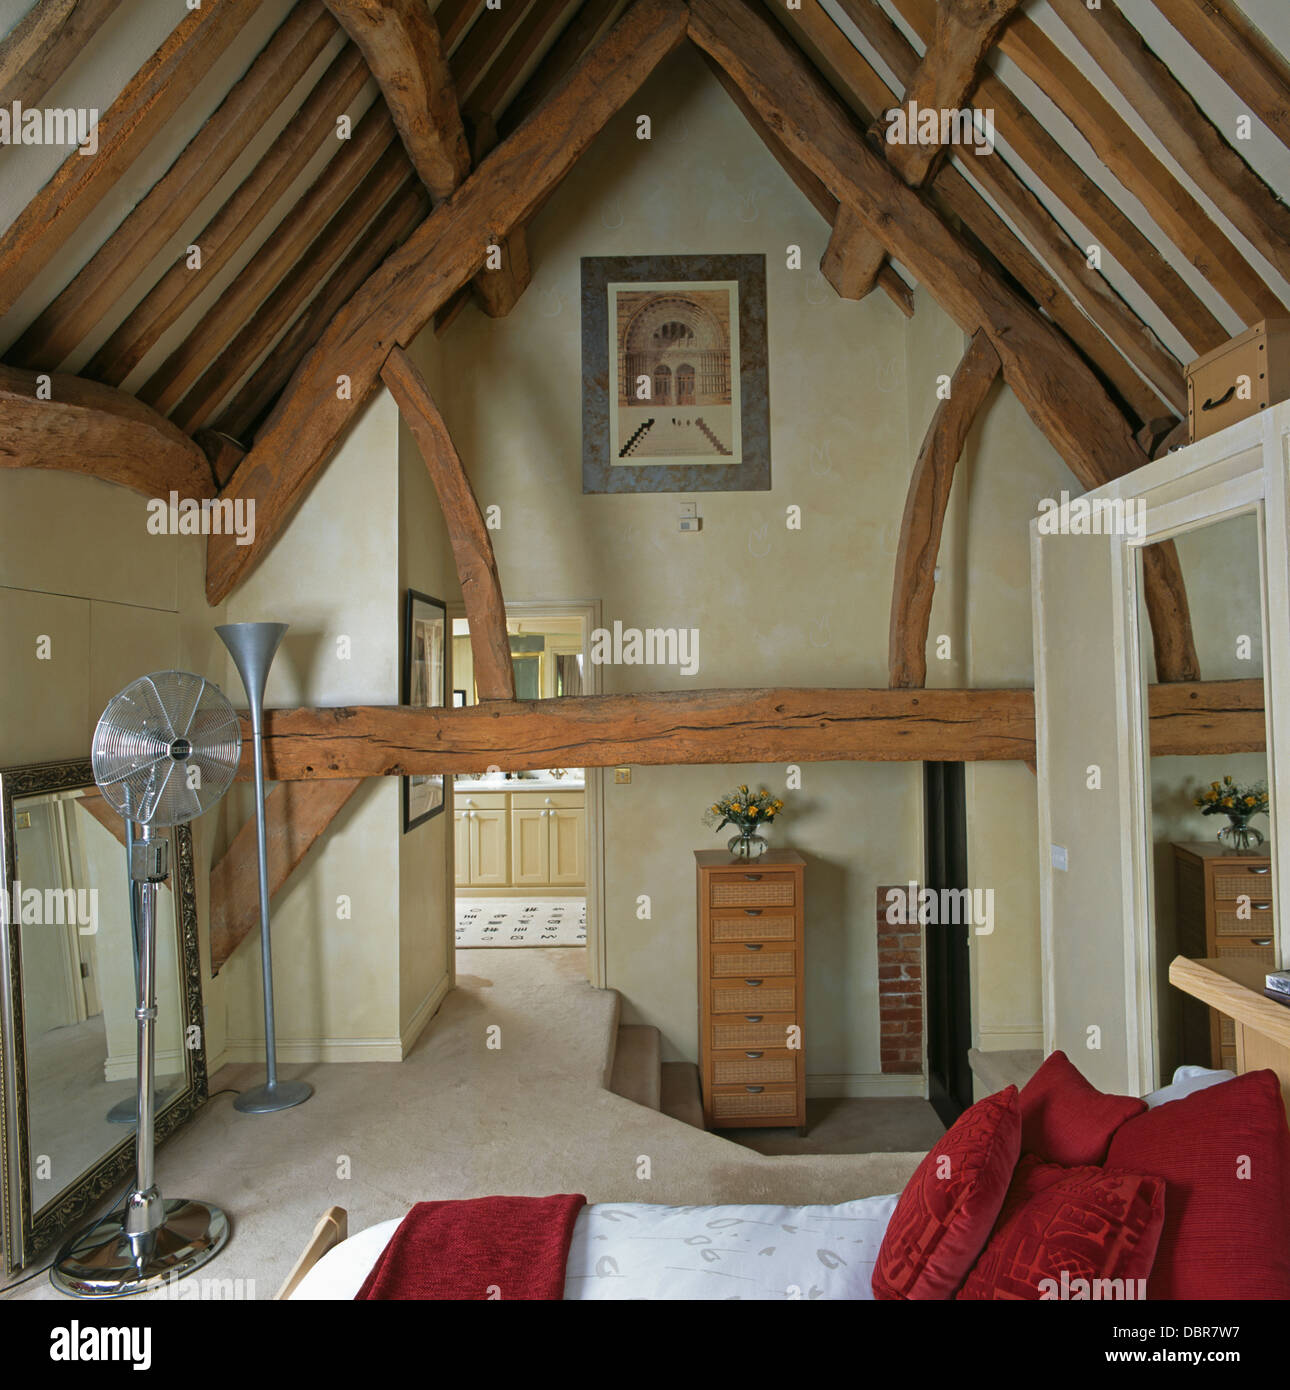 Barn Conversion Ideas Rustic Wooden Beams On Apex Ceiling In Barn Conversion